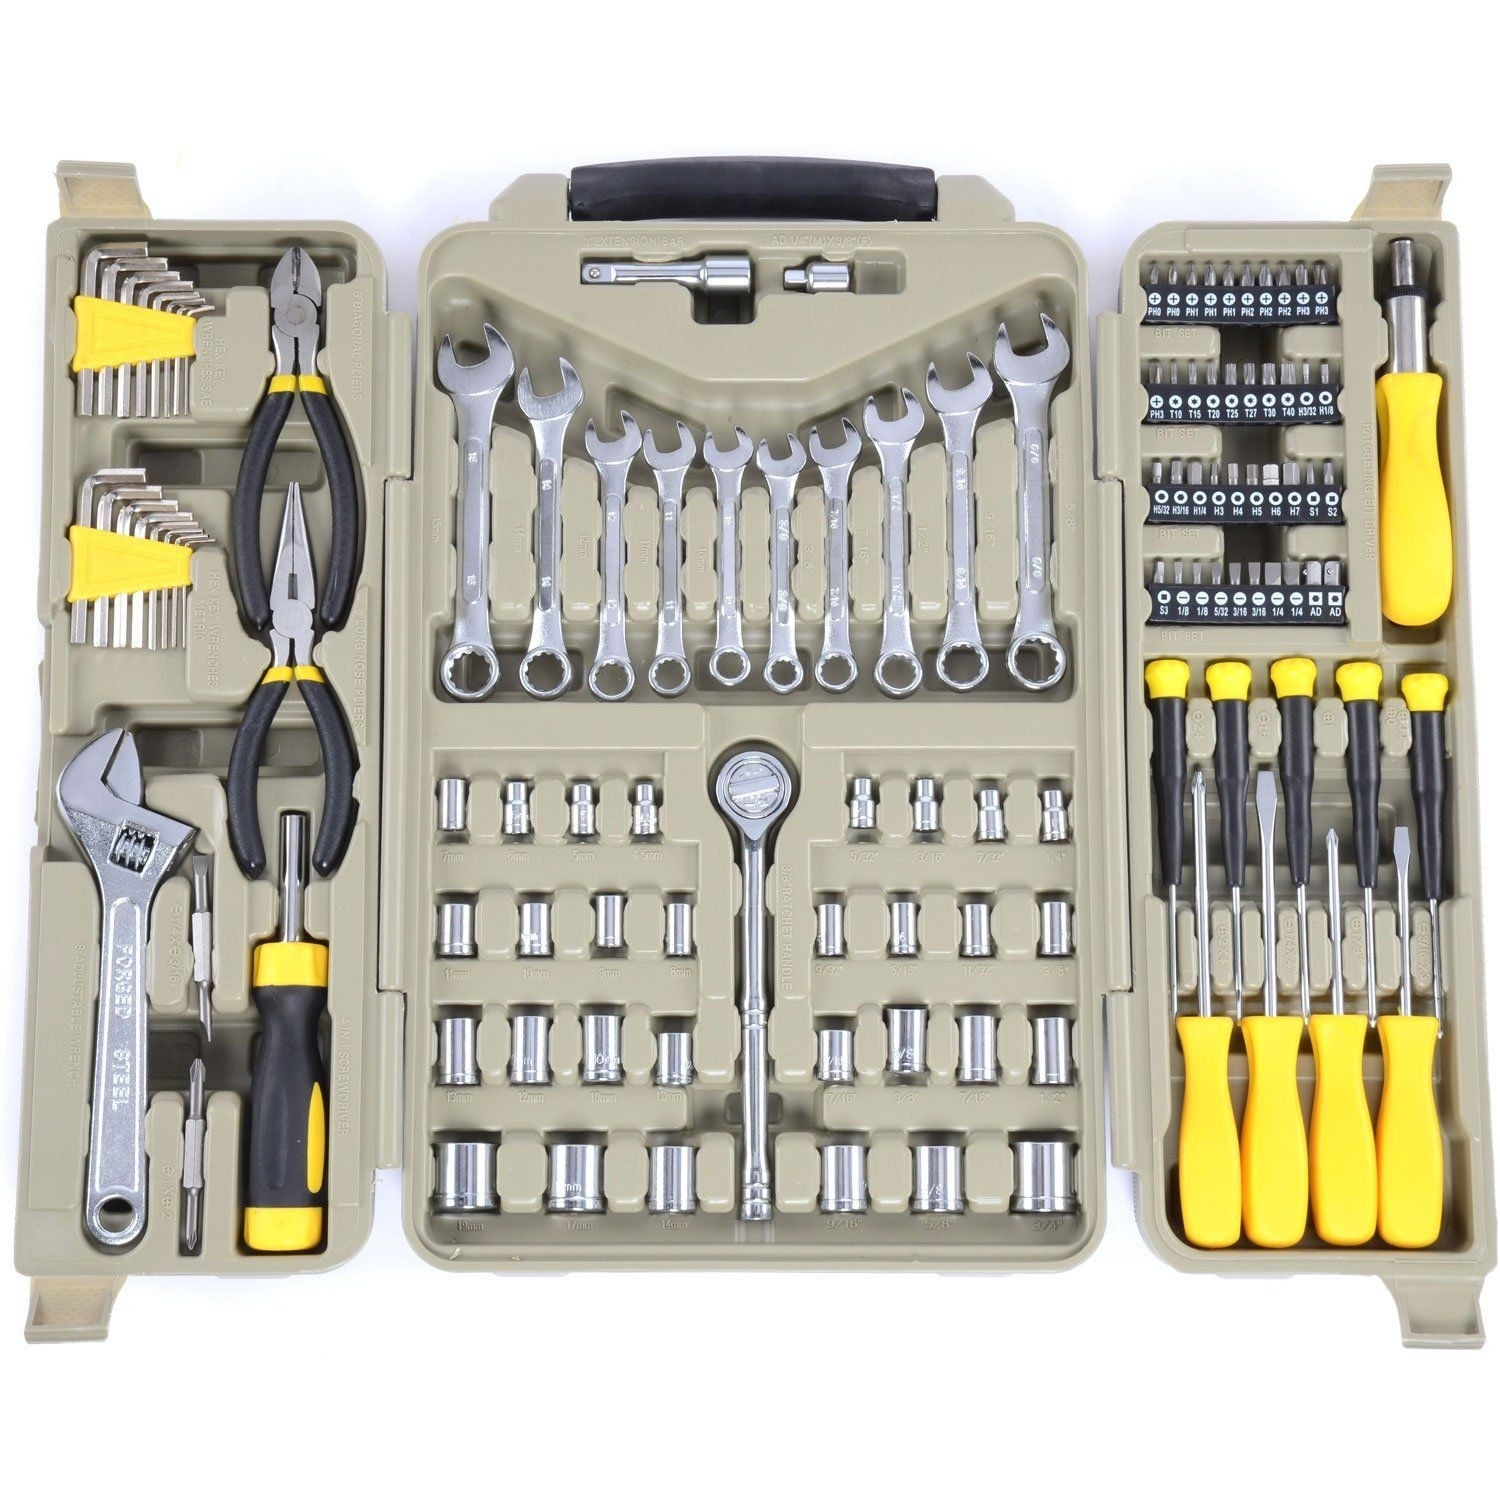 JEGS 123-Piece Tool Set w/ Carry Case - Plier, Socket, Wrench, Screwdriver & Bit Sets